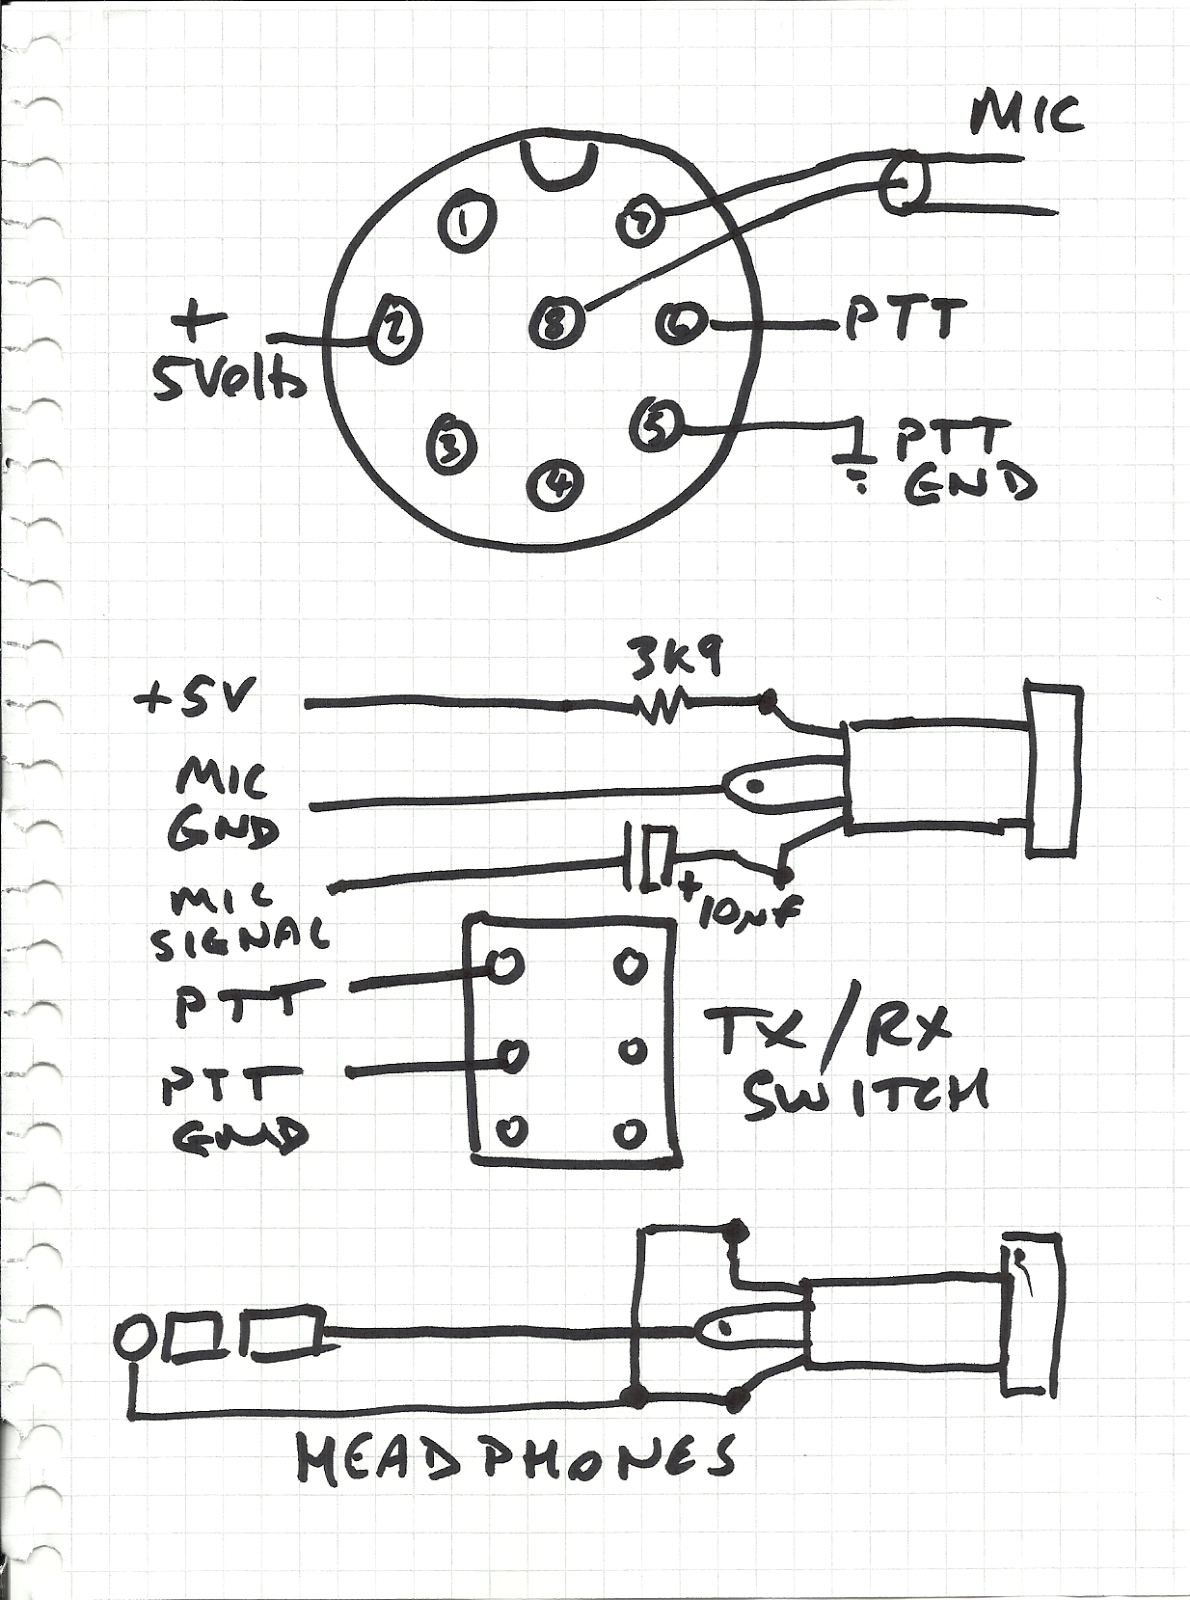 [DIAGRAM] Hm 103 Microphone Wiring Diagrams FULL Version